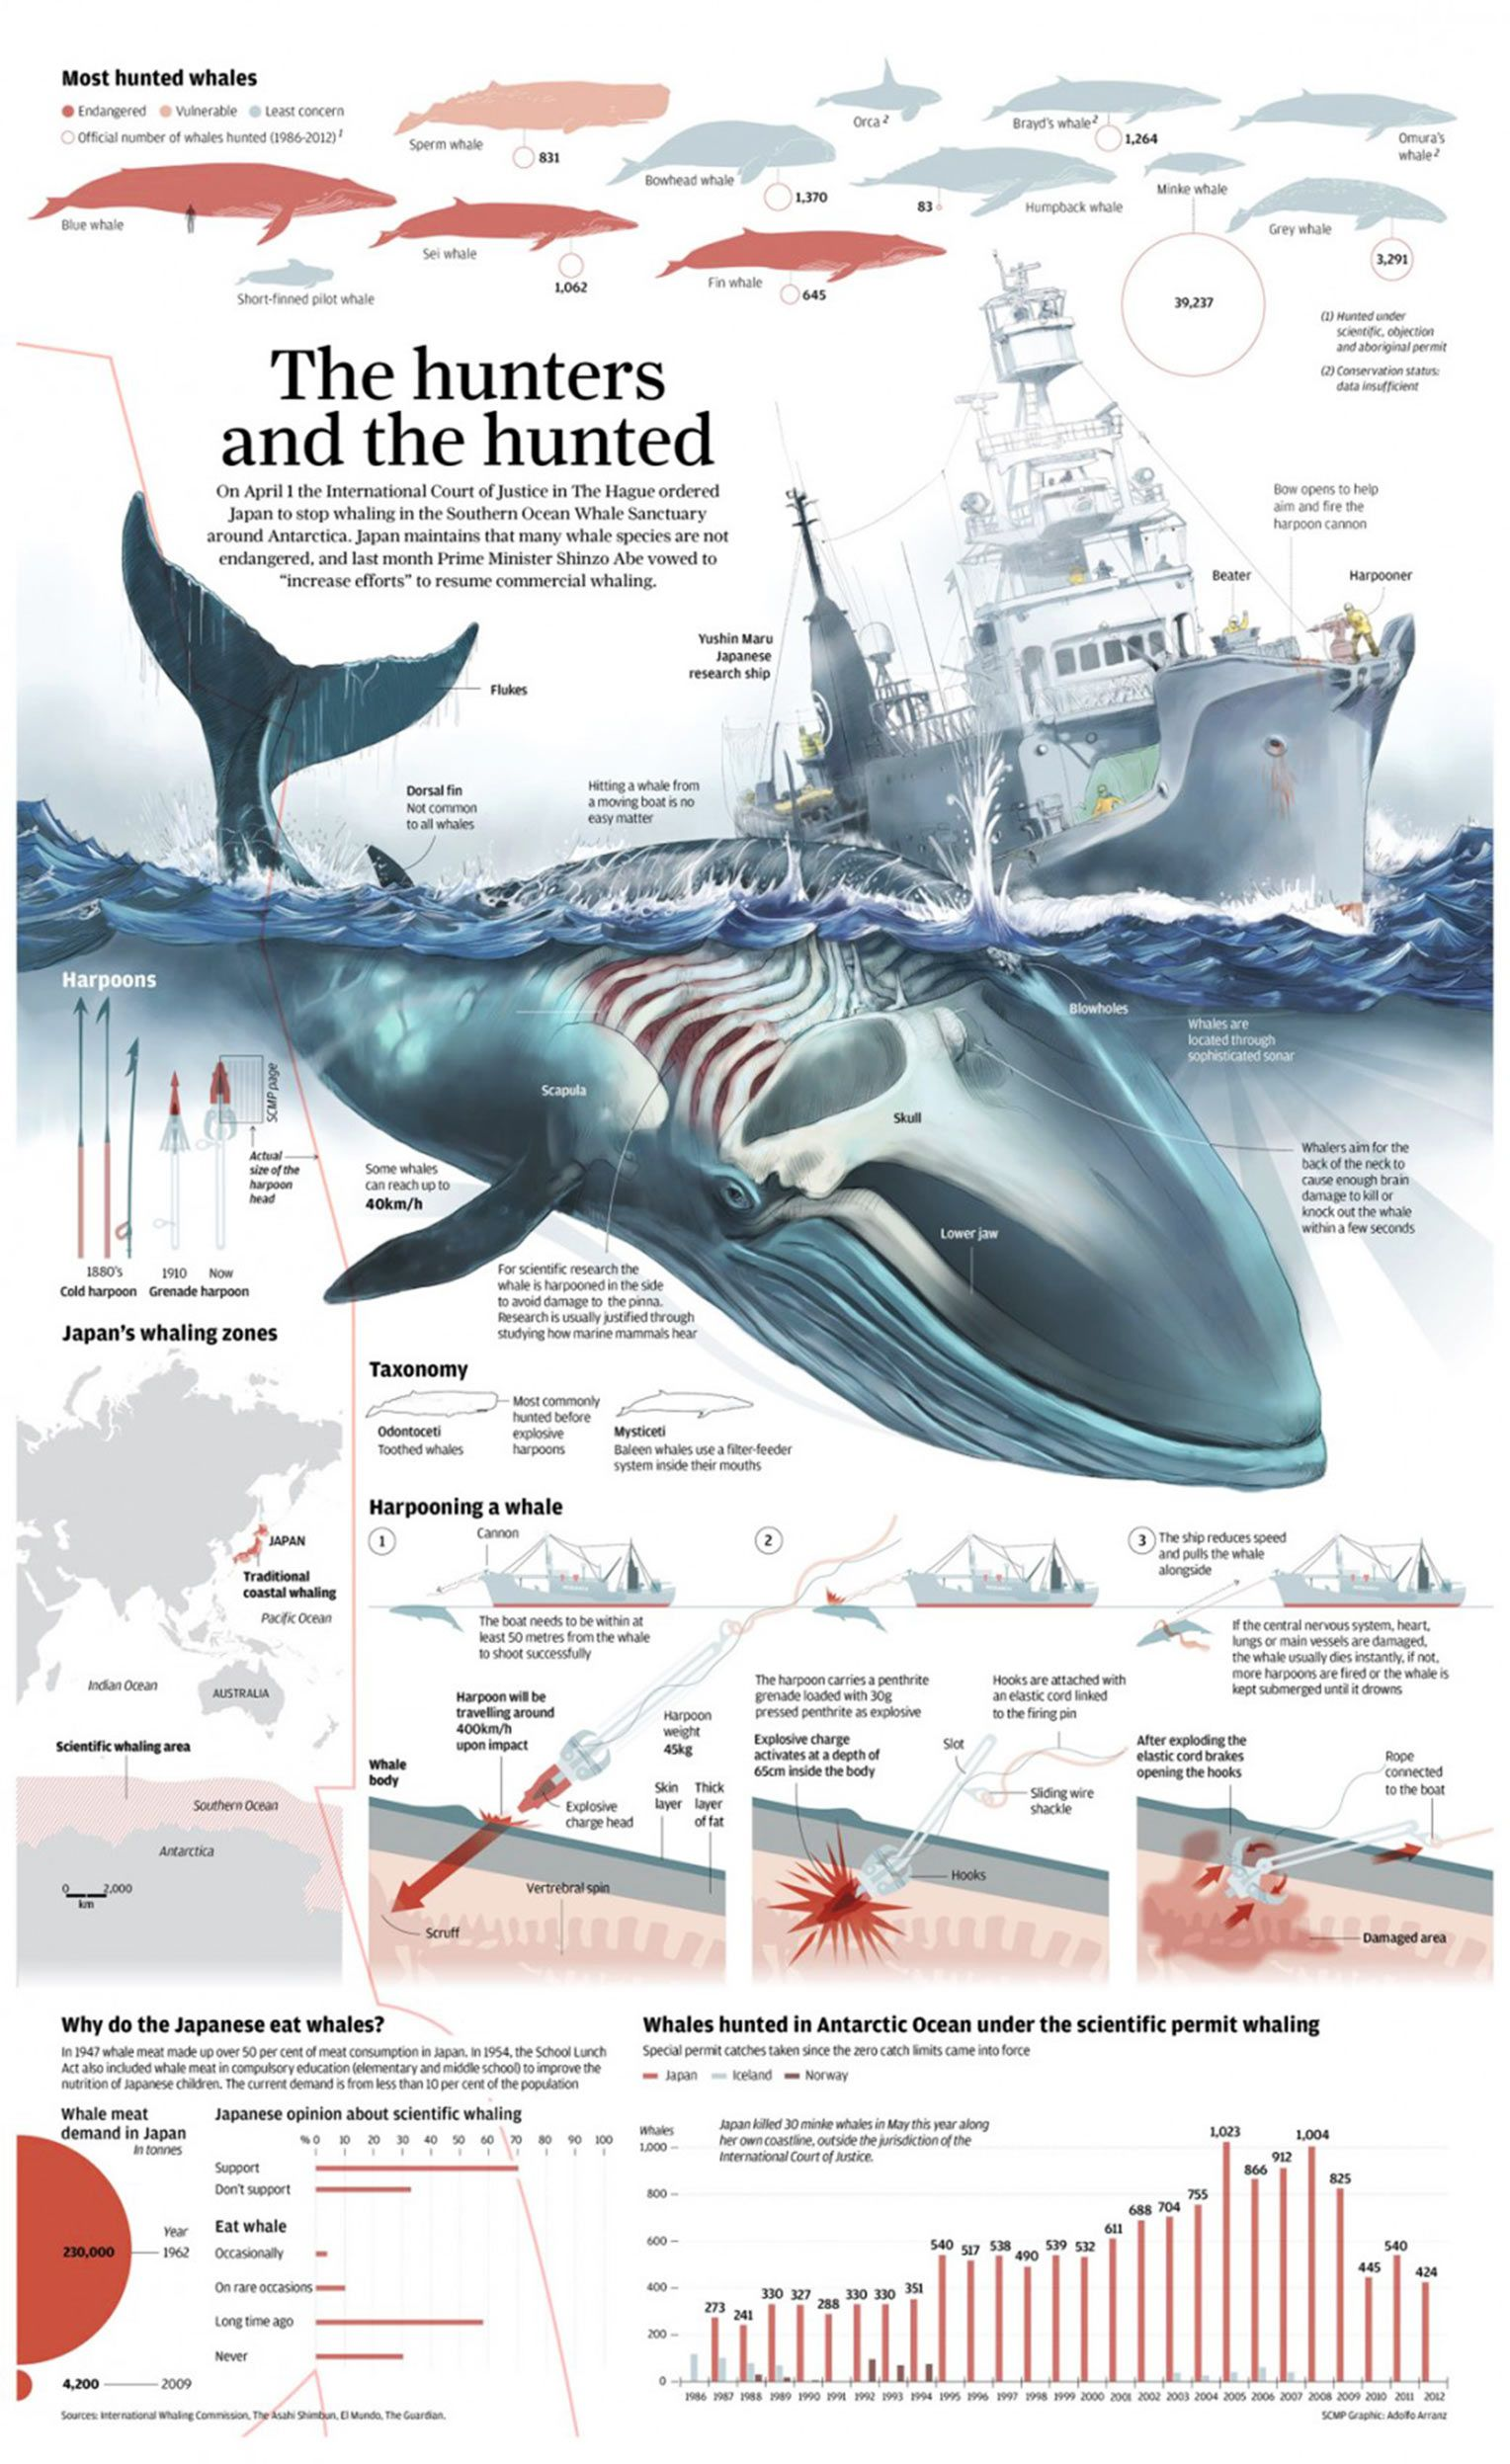 Whale Poaching in Japan [Infographic] | Pinterest | Infographic ...